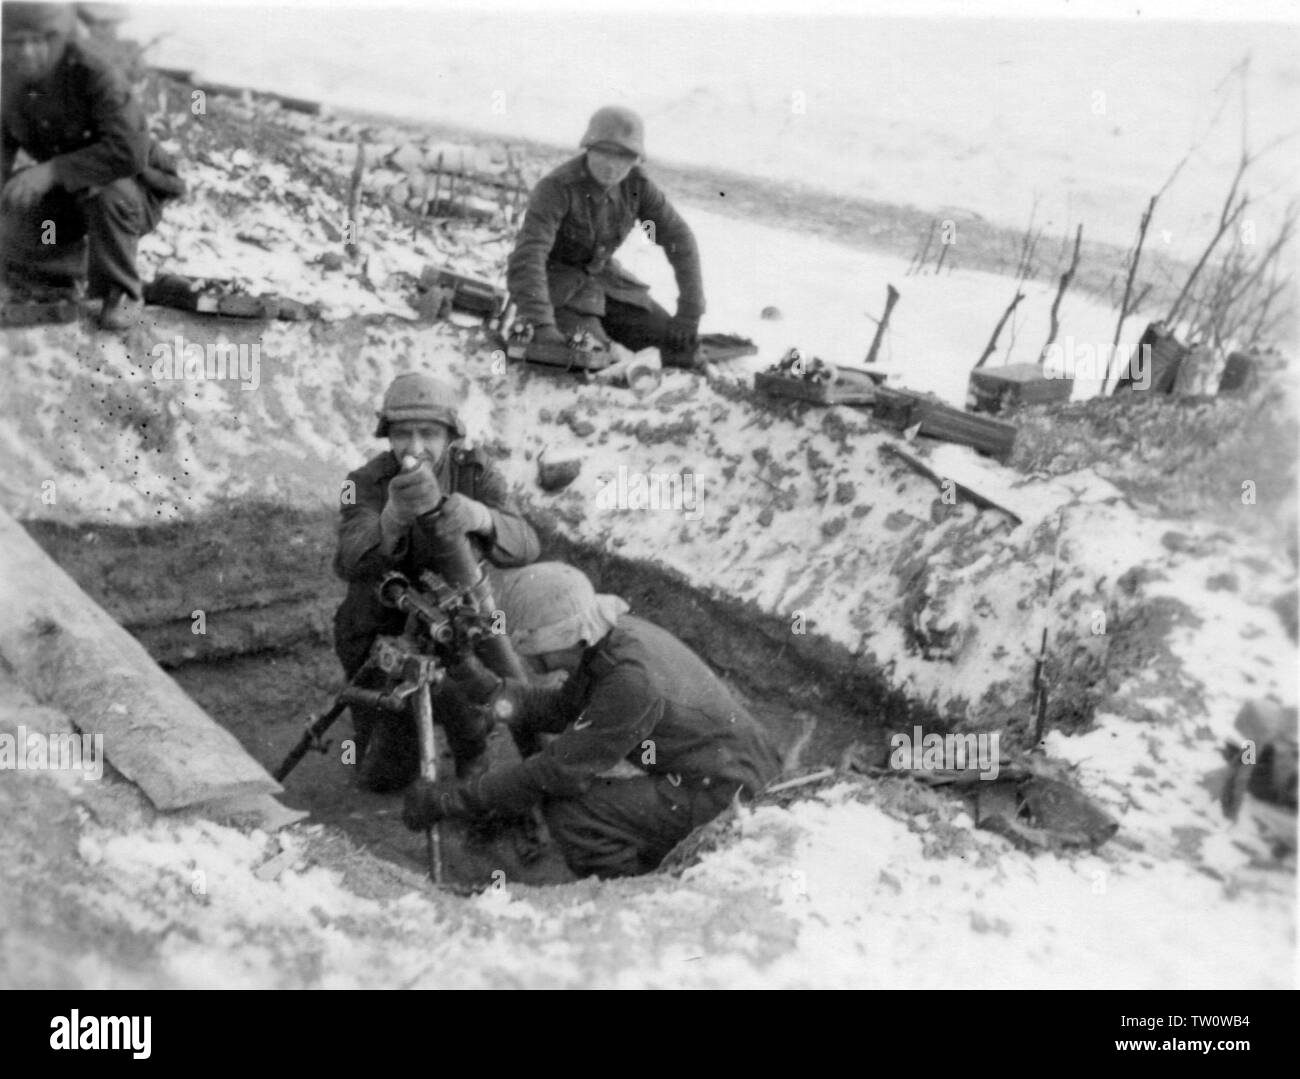 German Soldiers fire an 8cm Mortar on the Russian Front 1942 - Stock Image